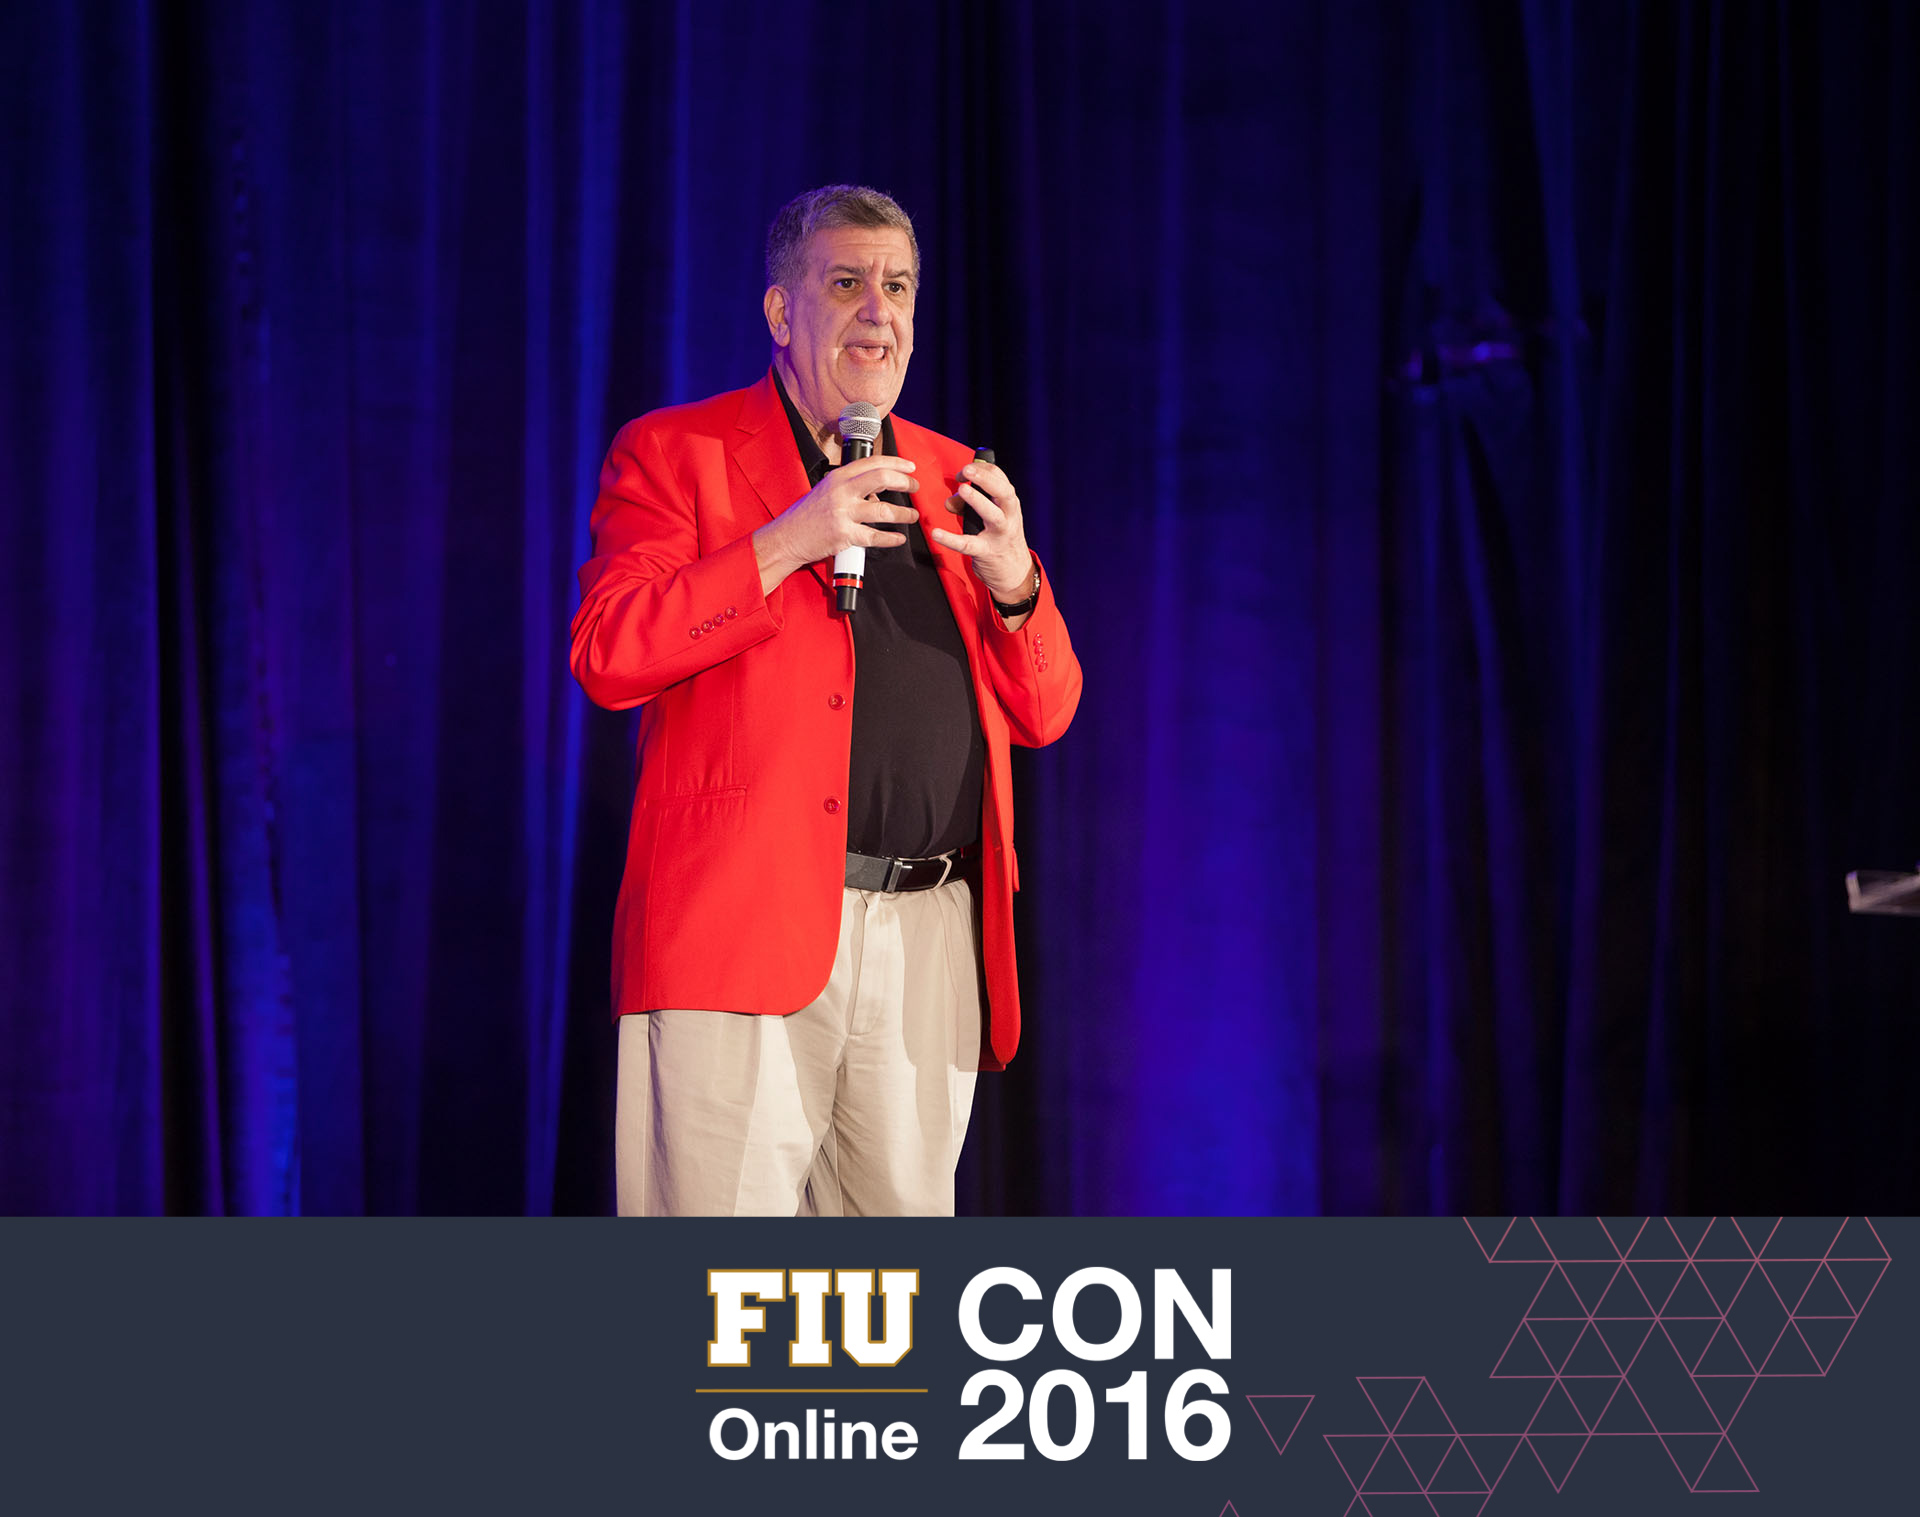 174.jpg FIU Online conference photos